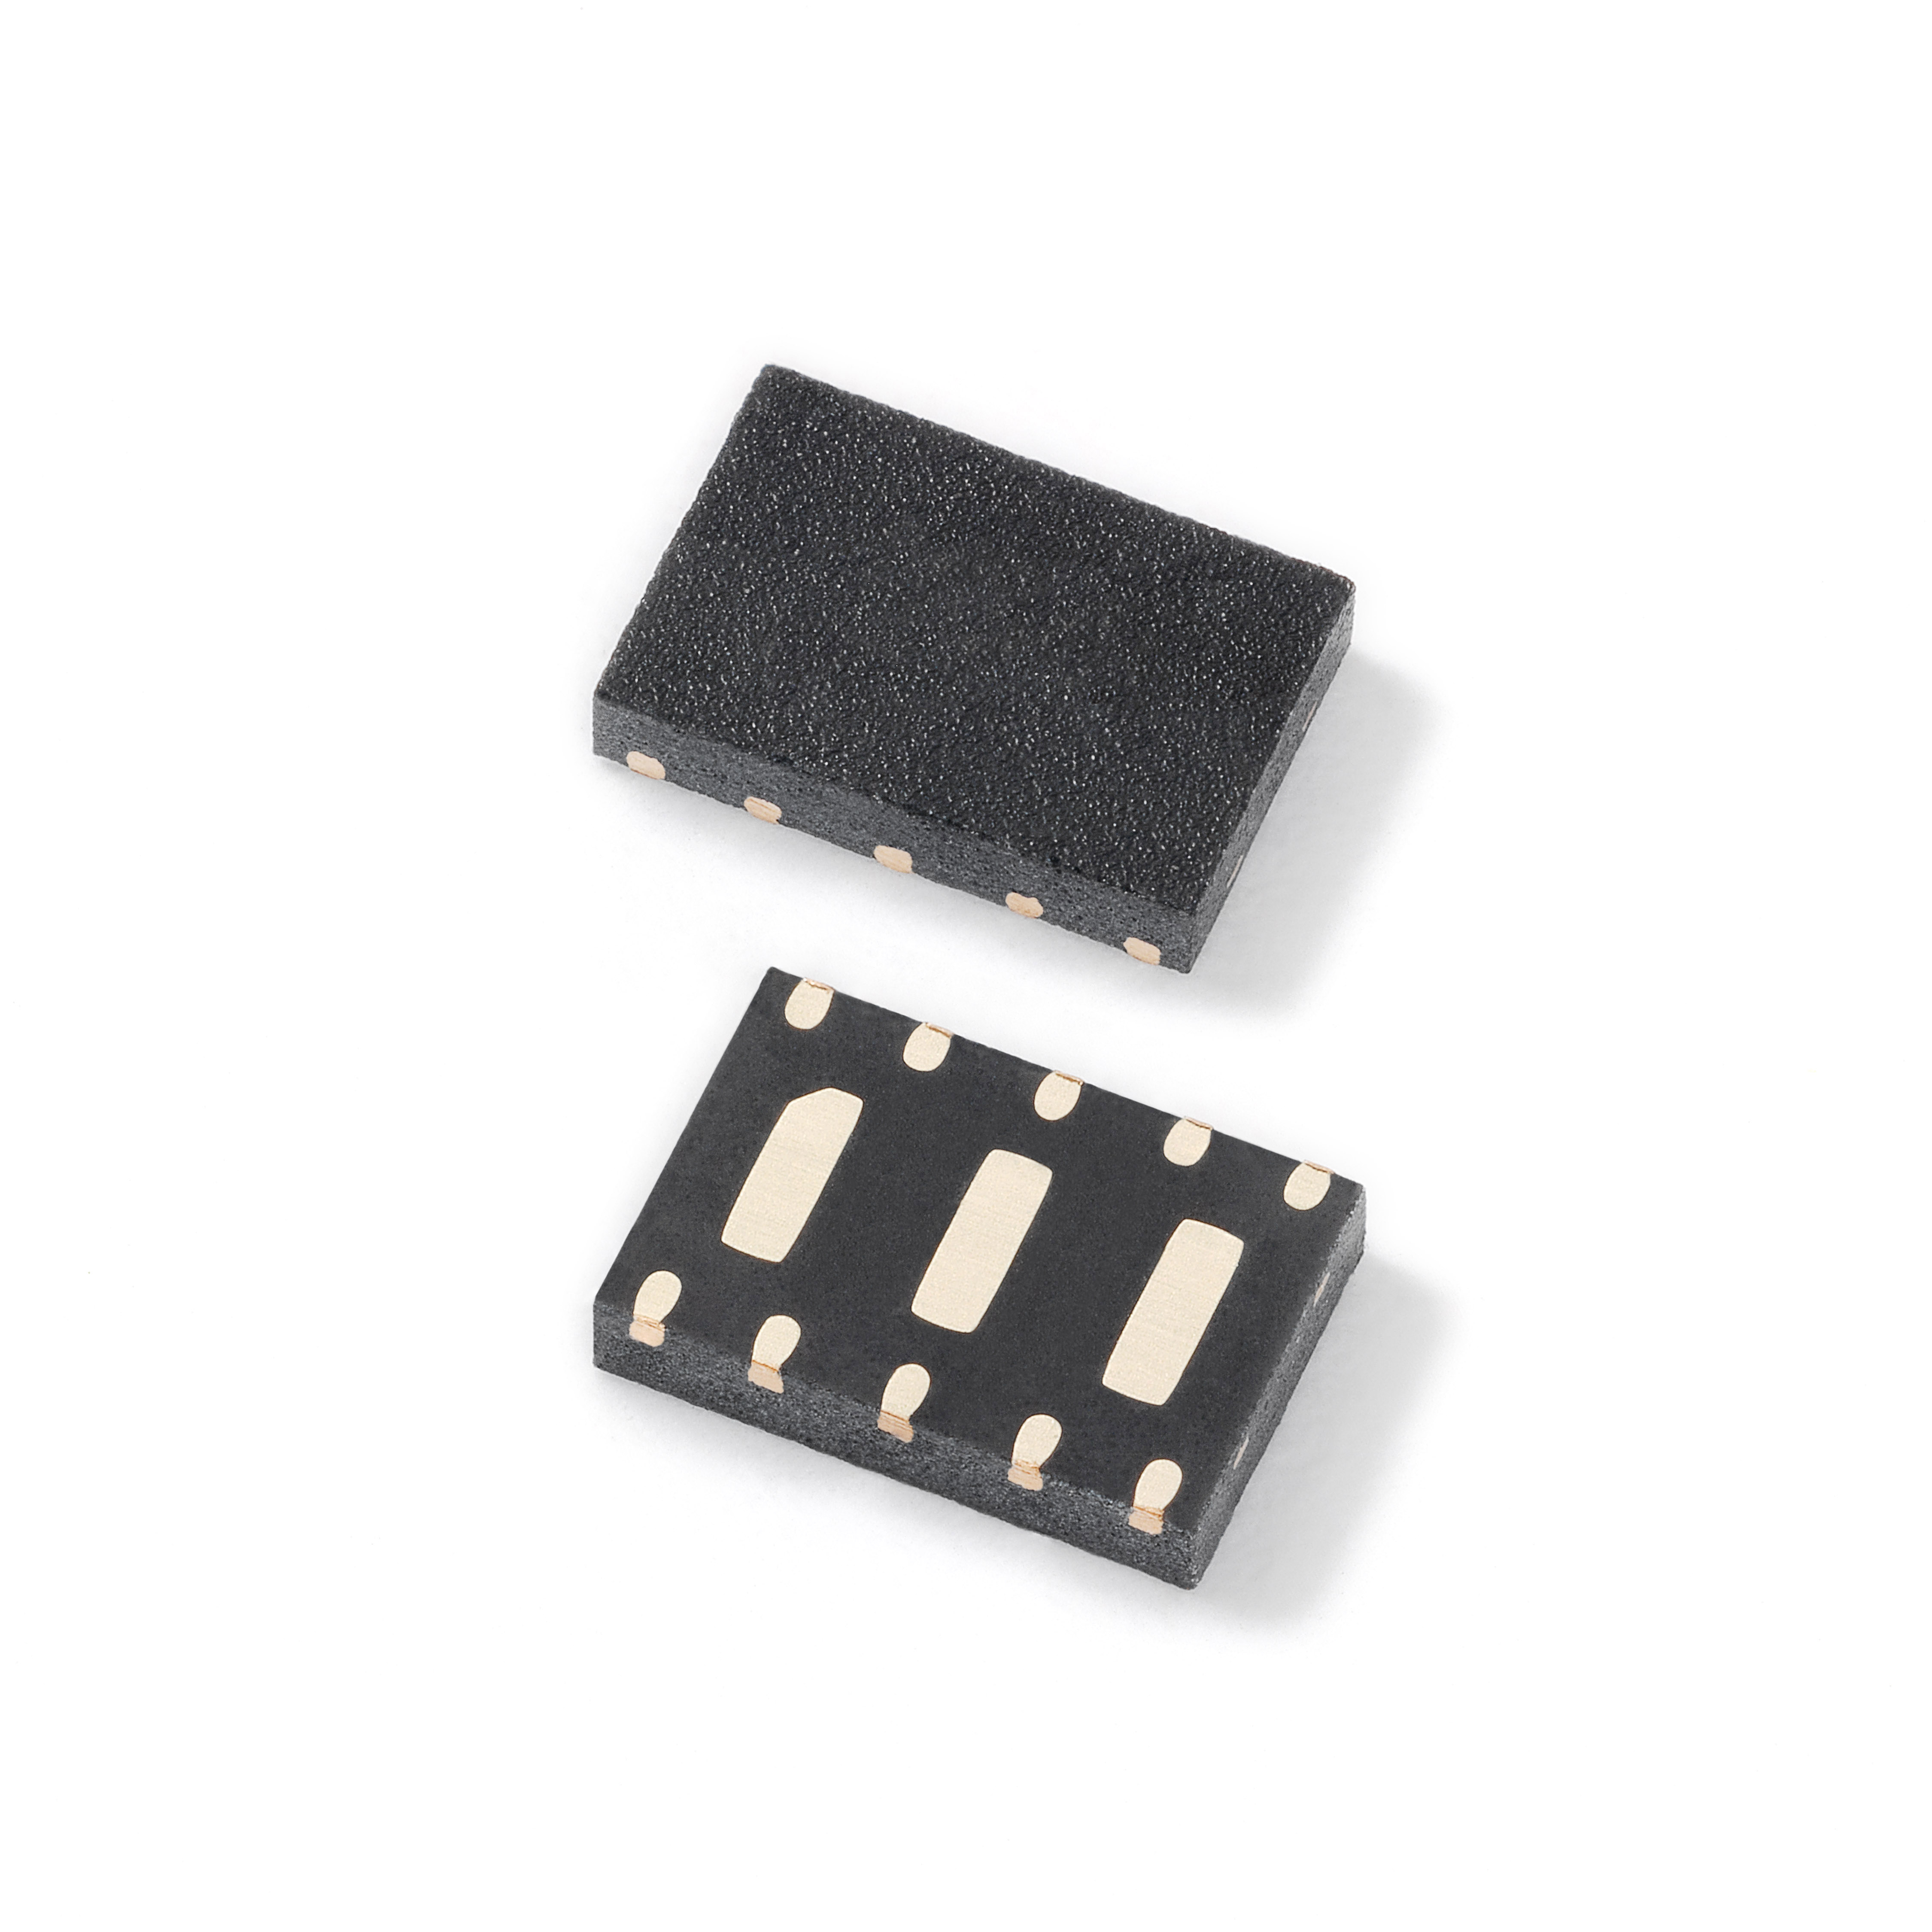 Low-capacitance TVS Diode arrays protect 10GbE against discharge and surge events